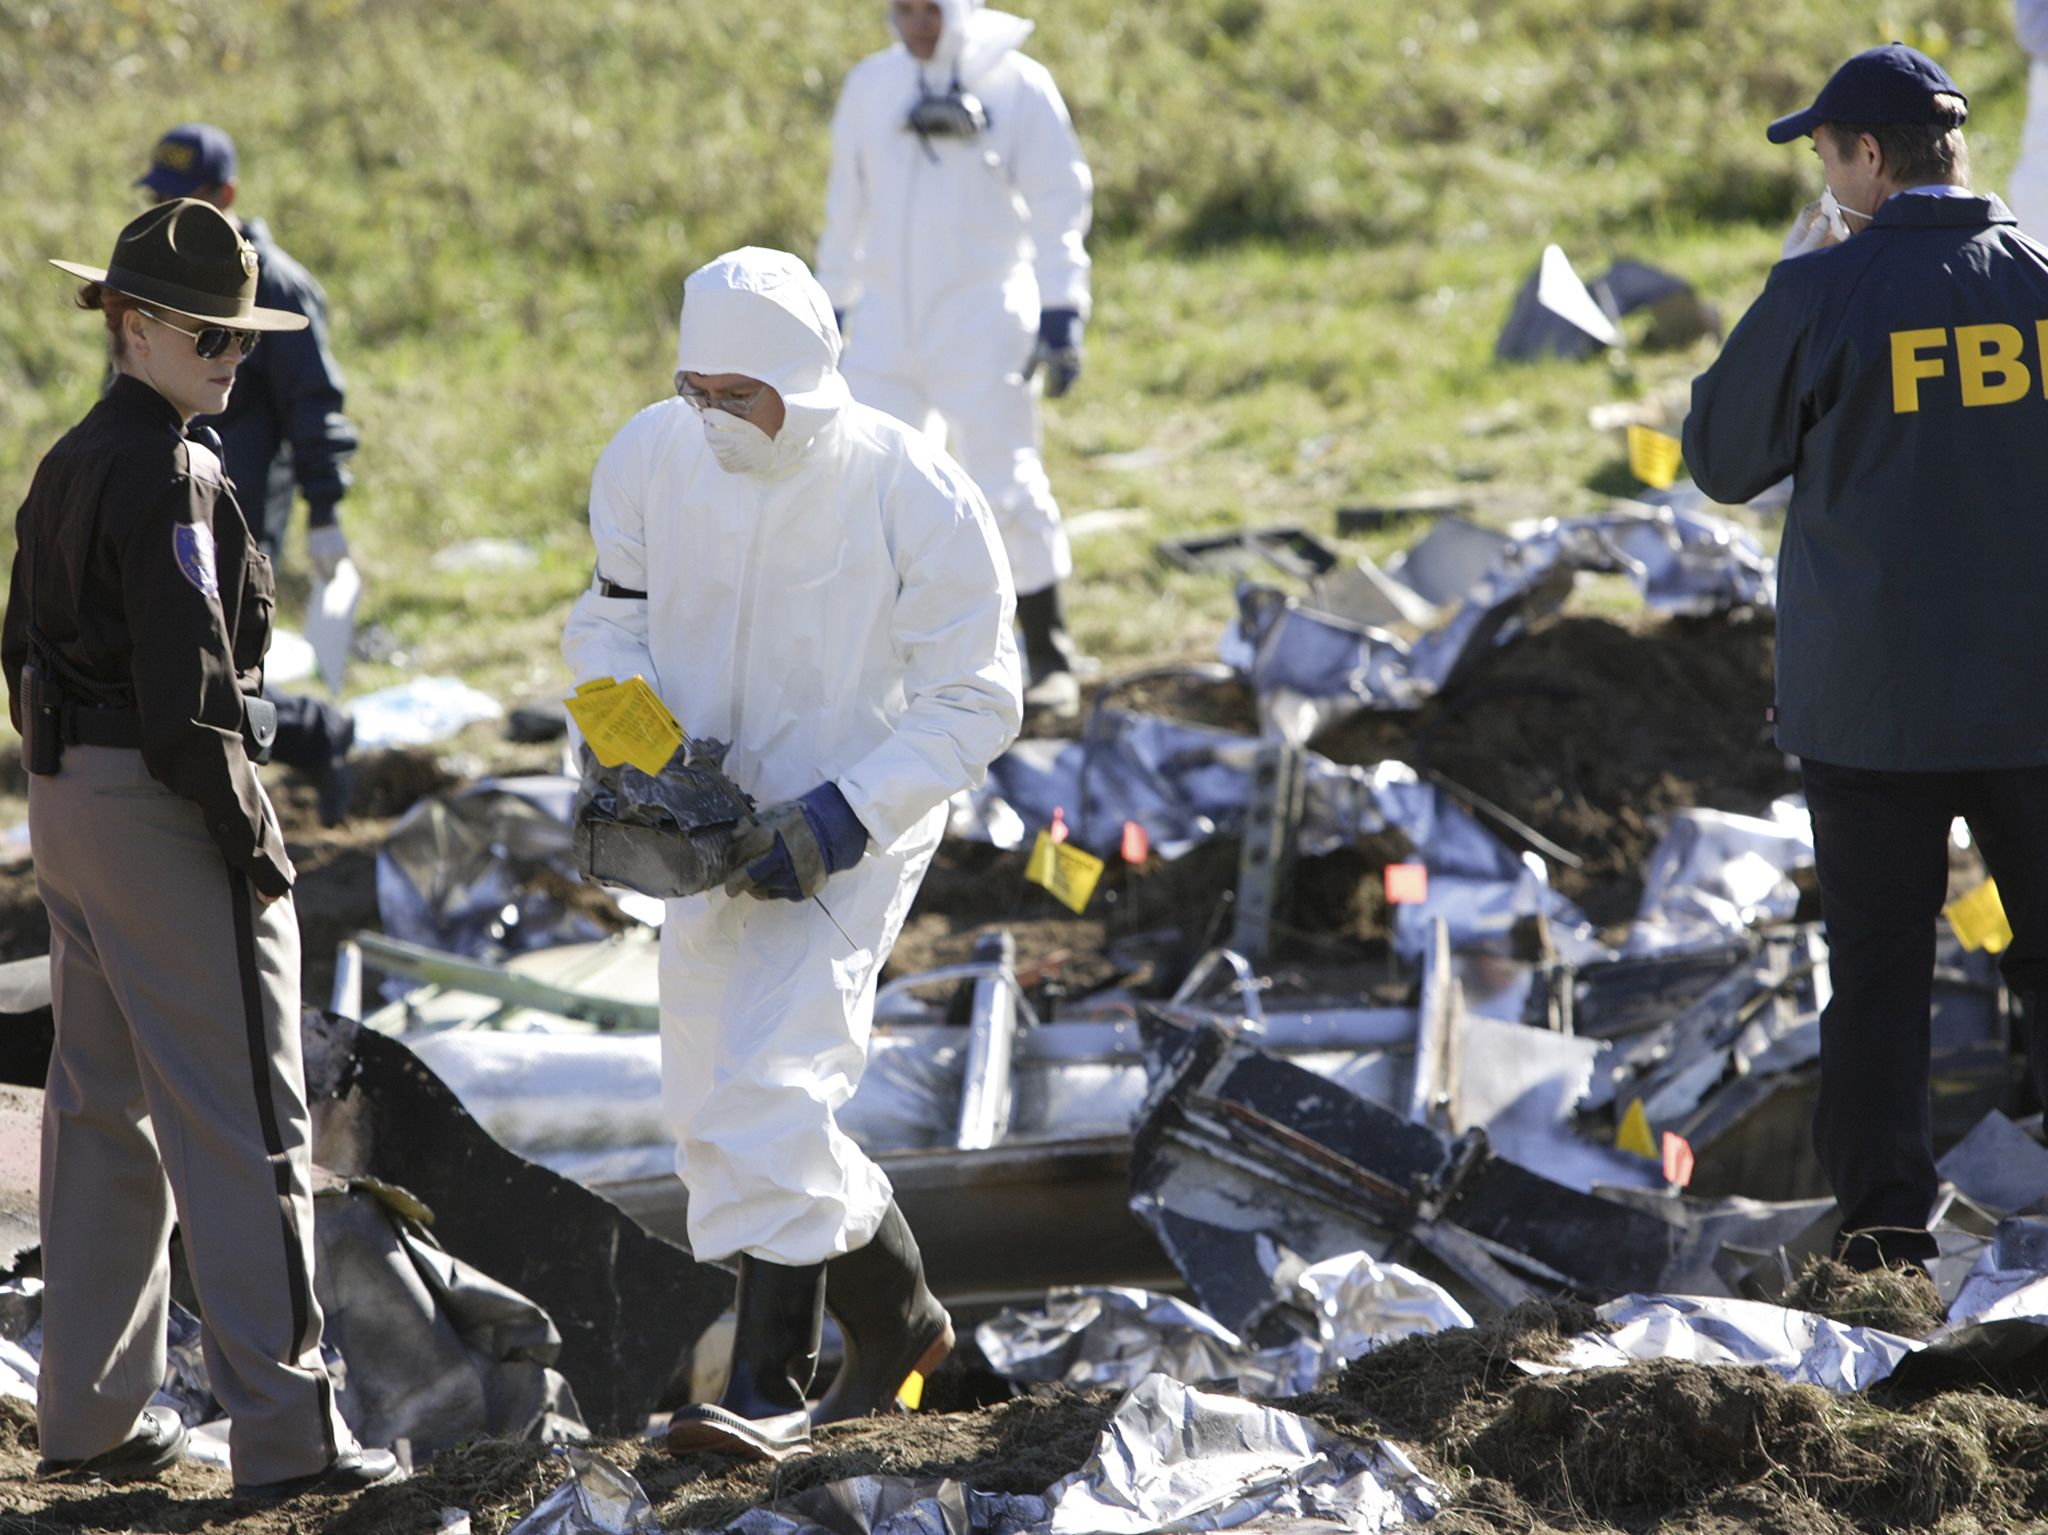 The NTSB recover evidence. This image is from Air Crash Investigation. [Photo of the day - September 2020]